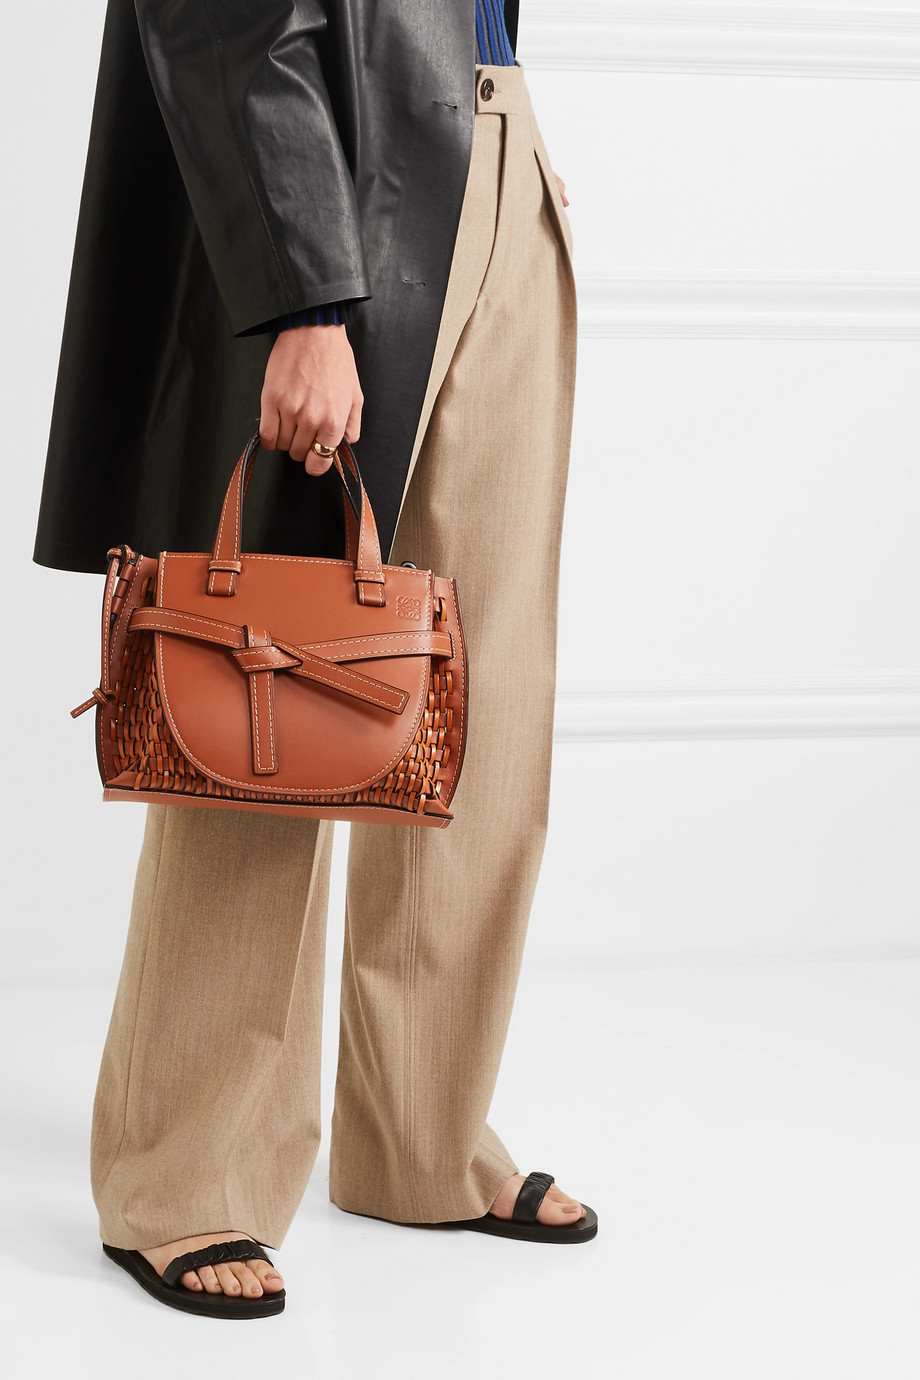 Loewe Gate woven leather tote